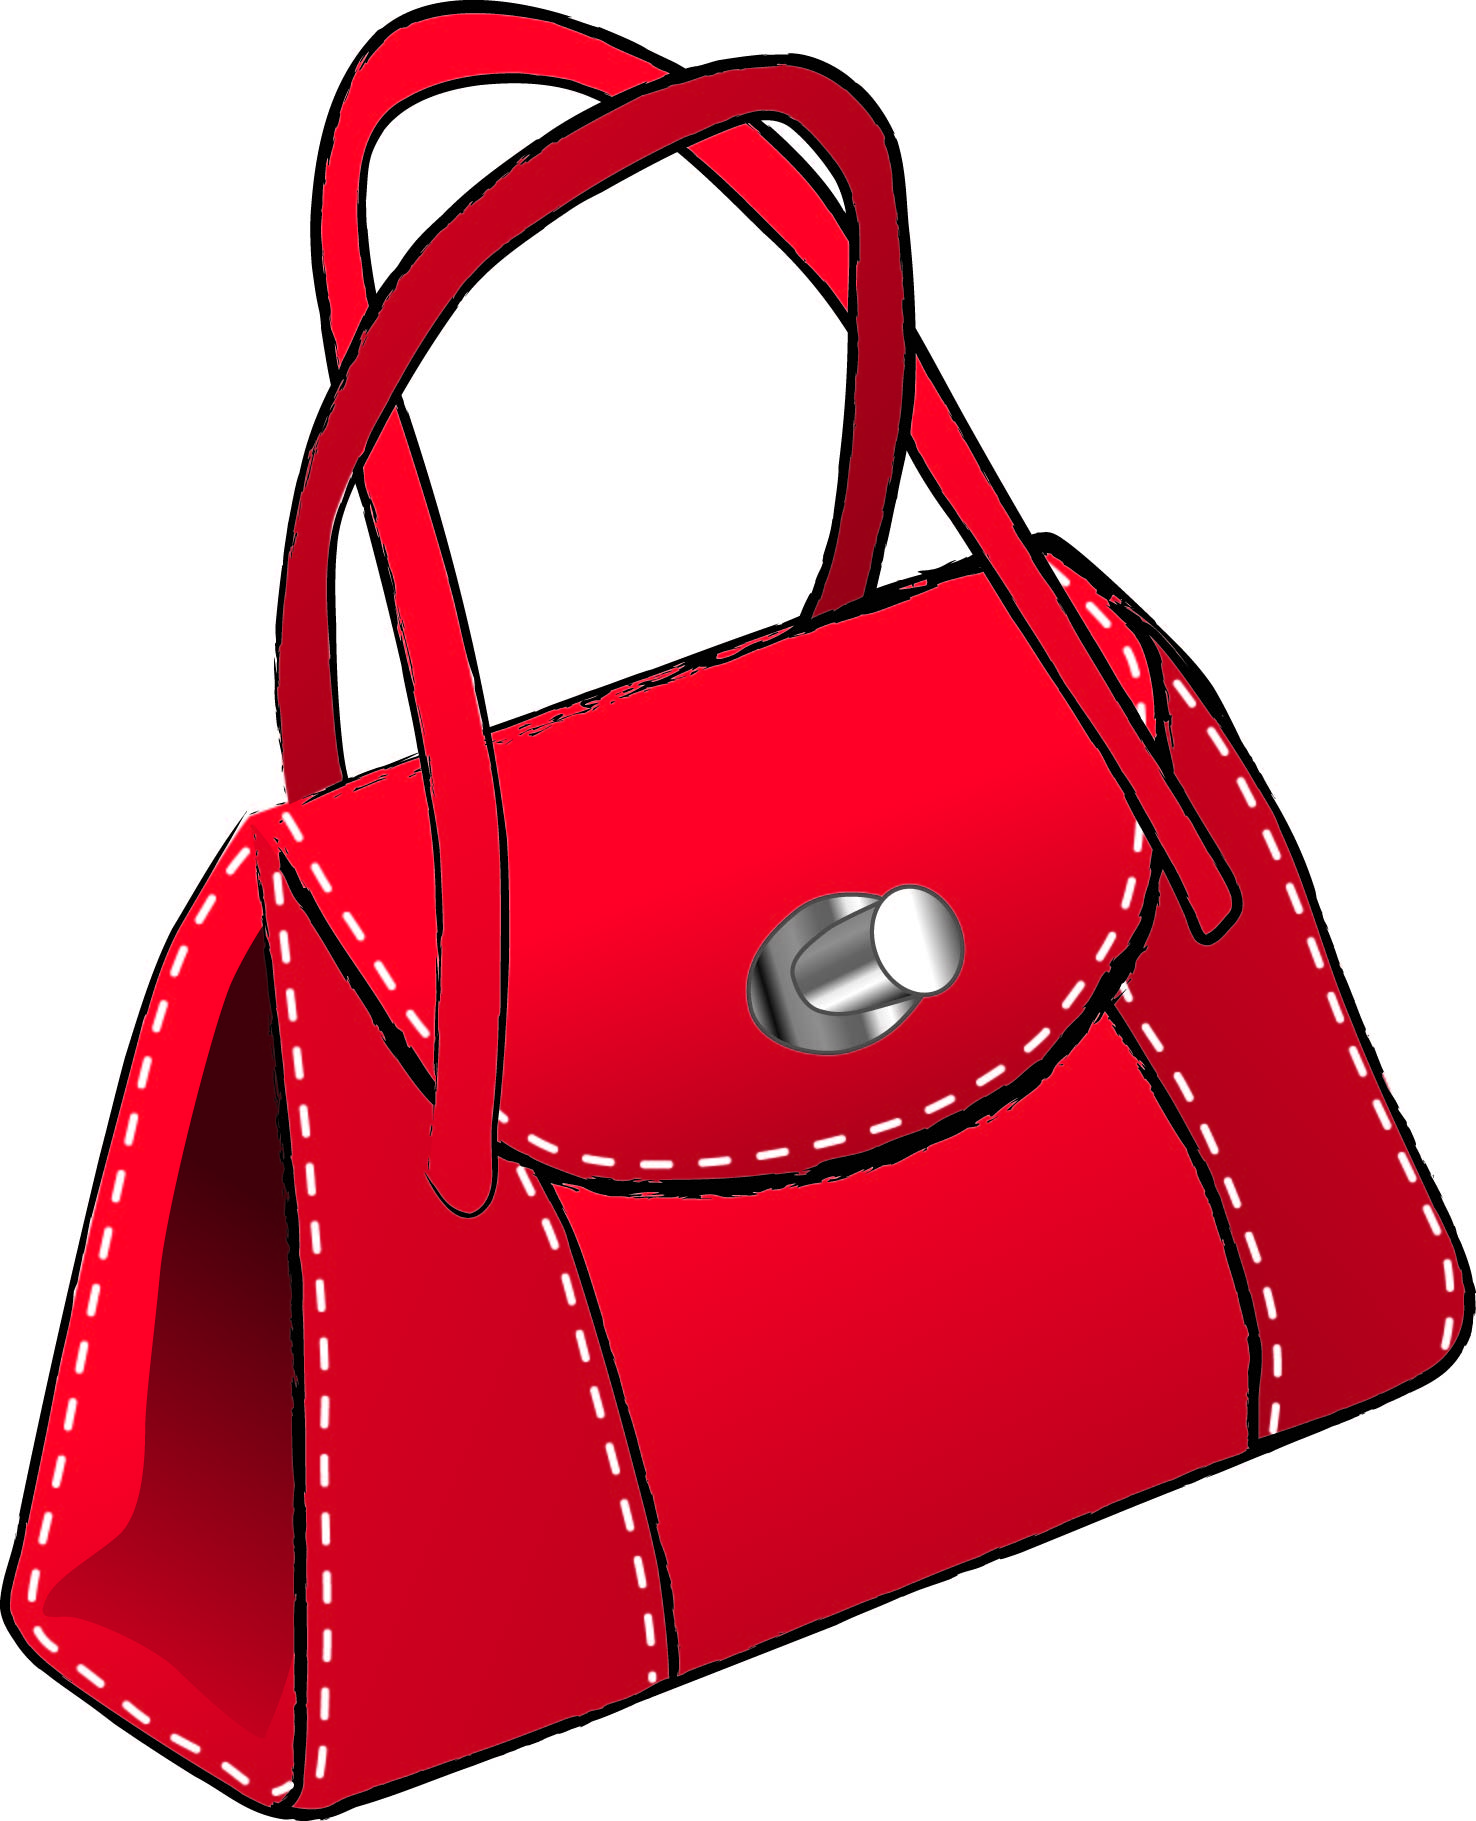 Custom Handbags And Purses Clipart With Image Of Handbags Clip